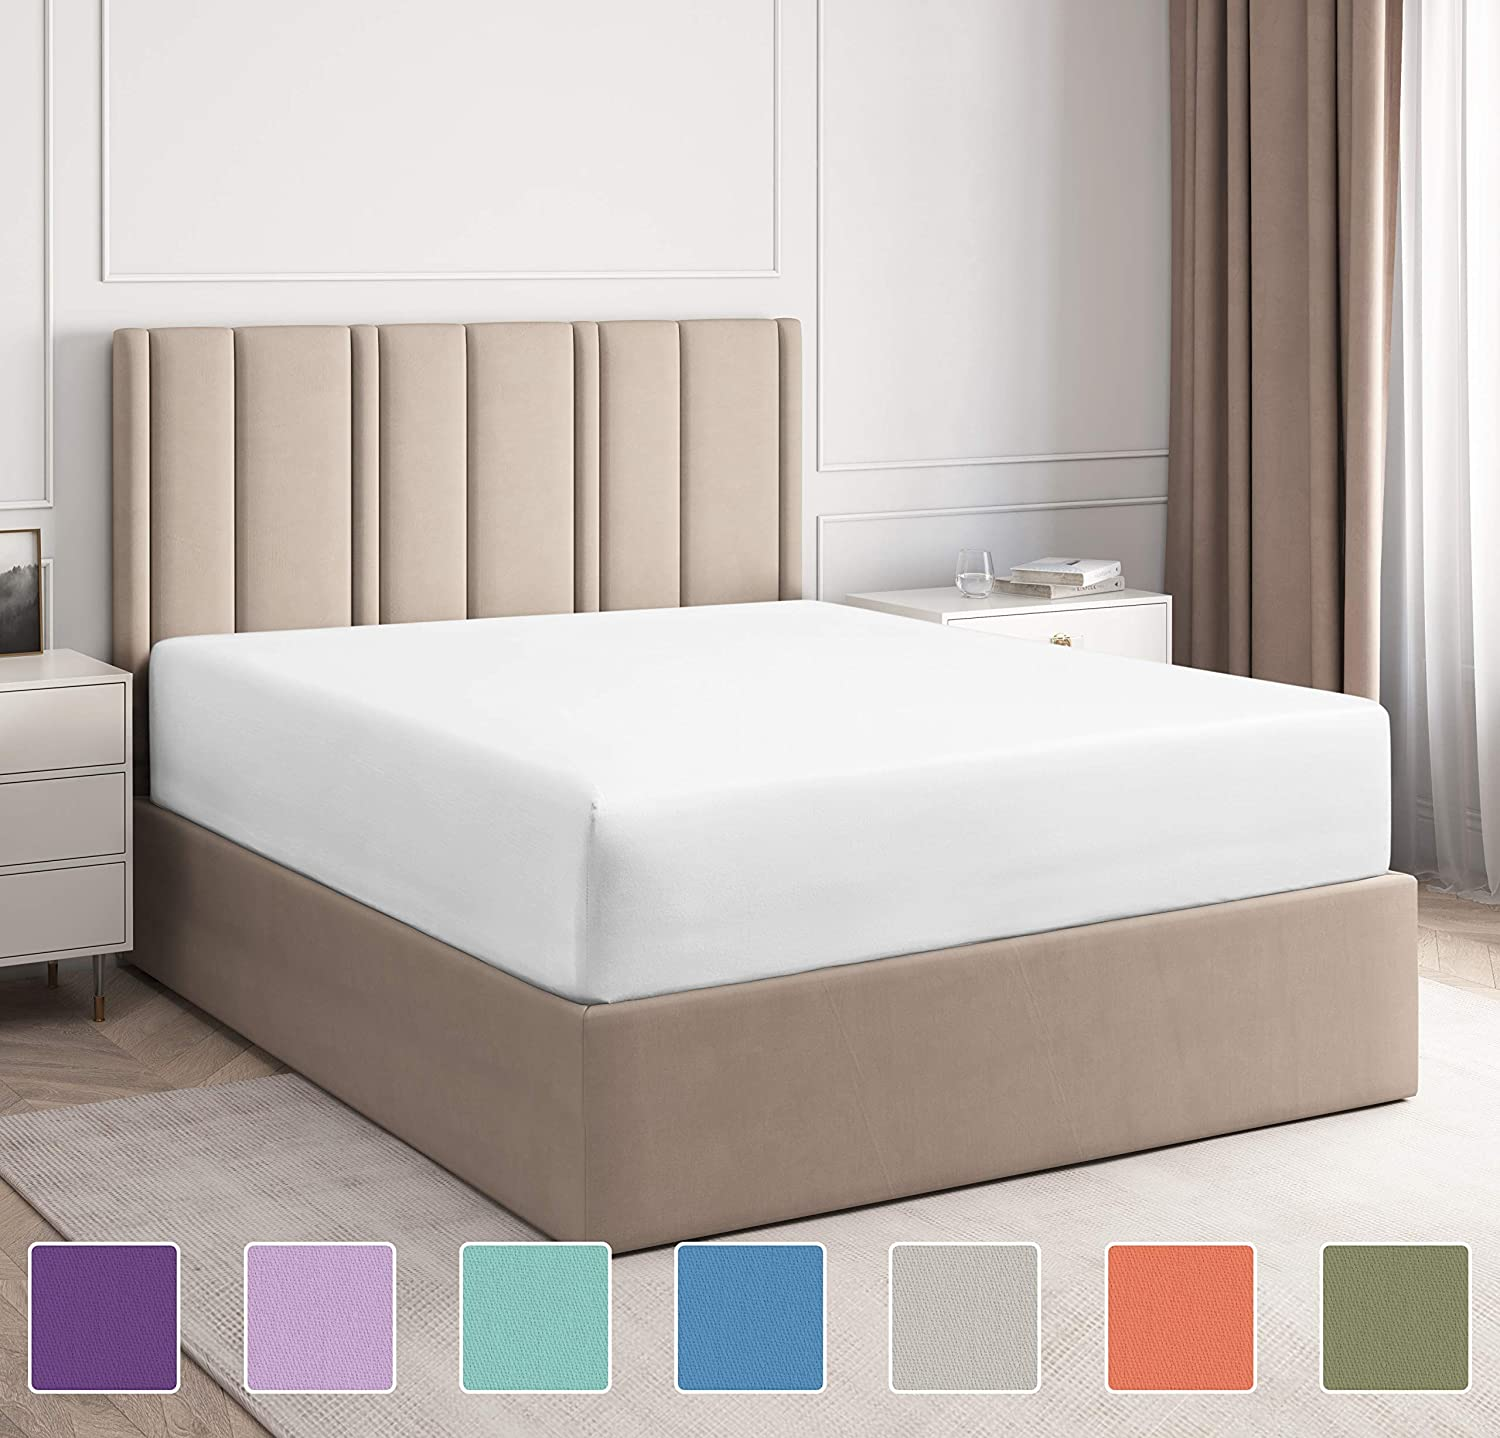 King Size Fitted Sheet - Single Fitted Sheet King - King Fitted Sheet Only - Fitted Sheet Deep Pocket - Fitted Sheet for King Mattress - Softer Than Egyptian Cotton - King - 1 Fitted Sheet Only King